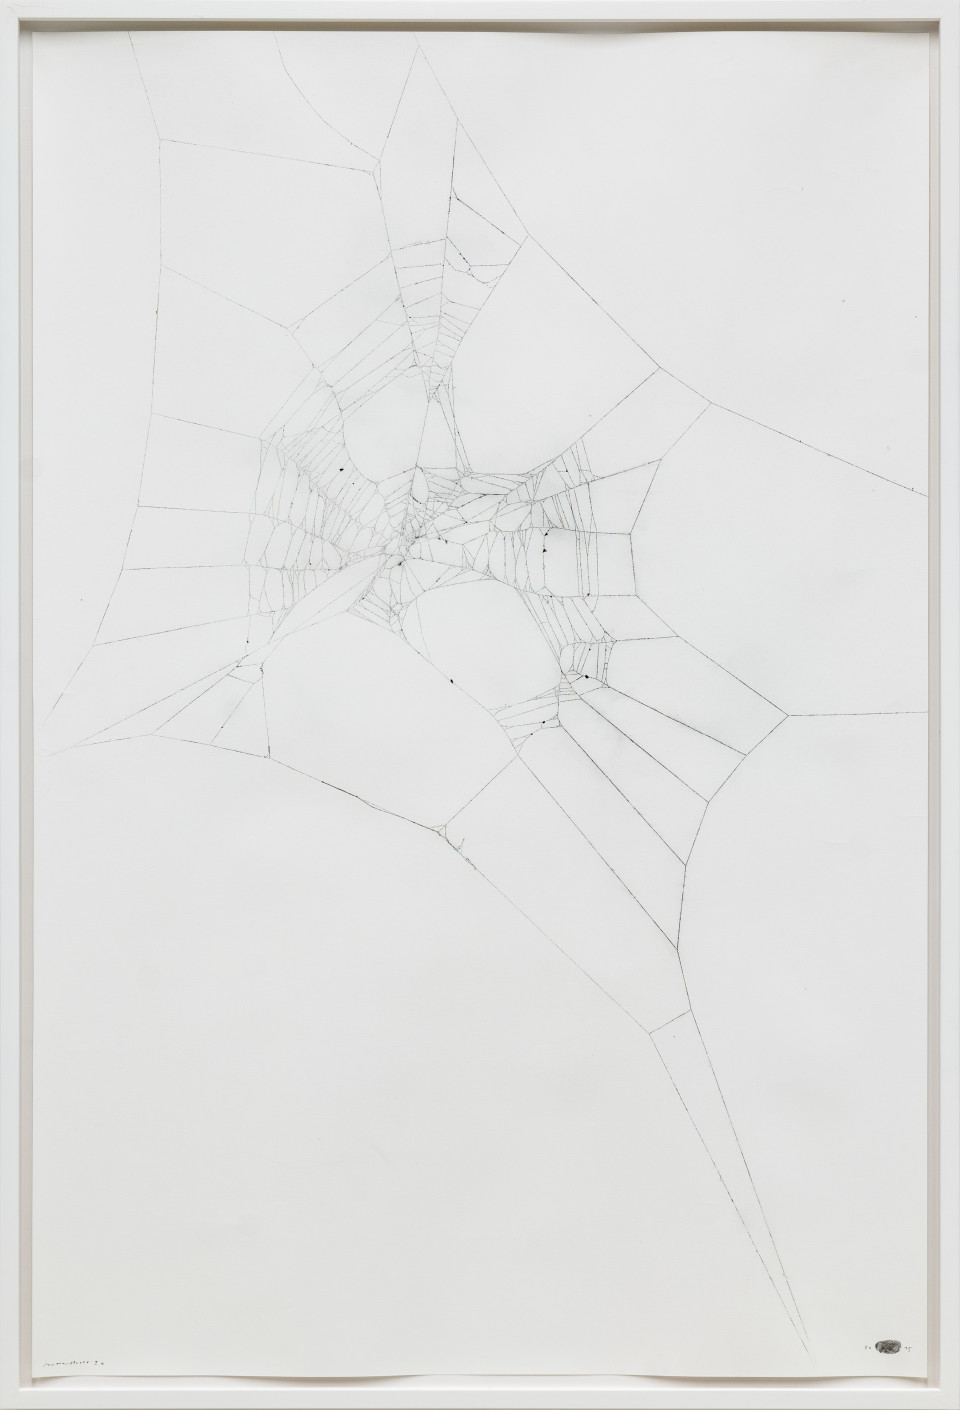 Maximilian Prüfer  Mothercity 1b, 2015  Naturantypie Spider webs on paper  134 x 90 cm 52 3/4 x 35 3/8 in